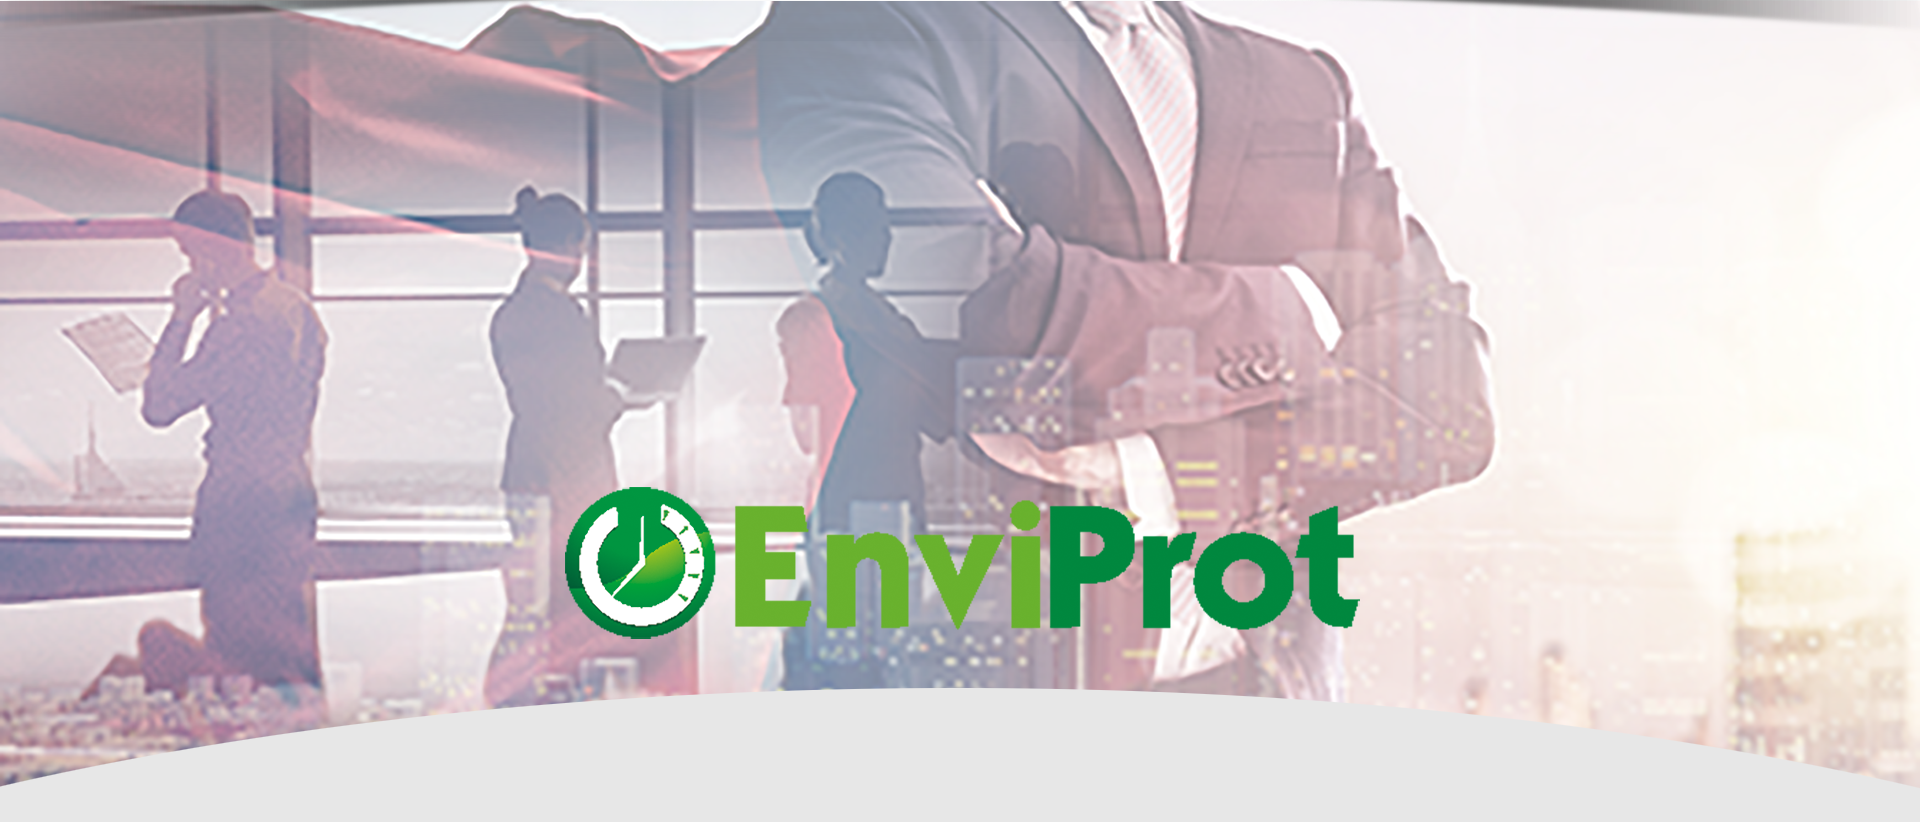 EnviProt - der Powermanager